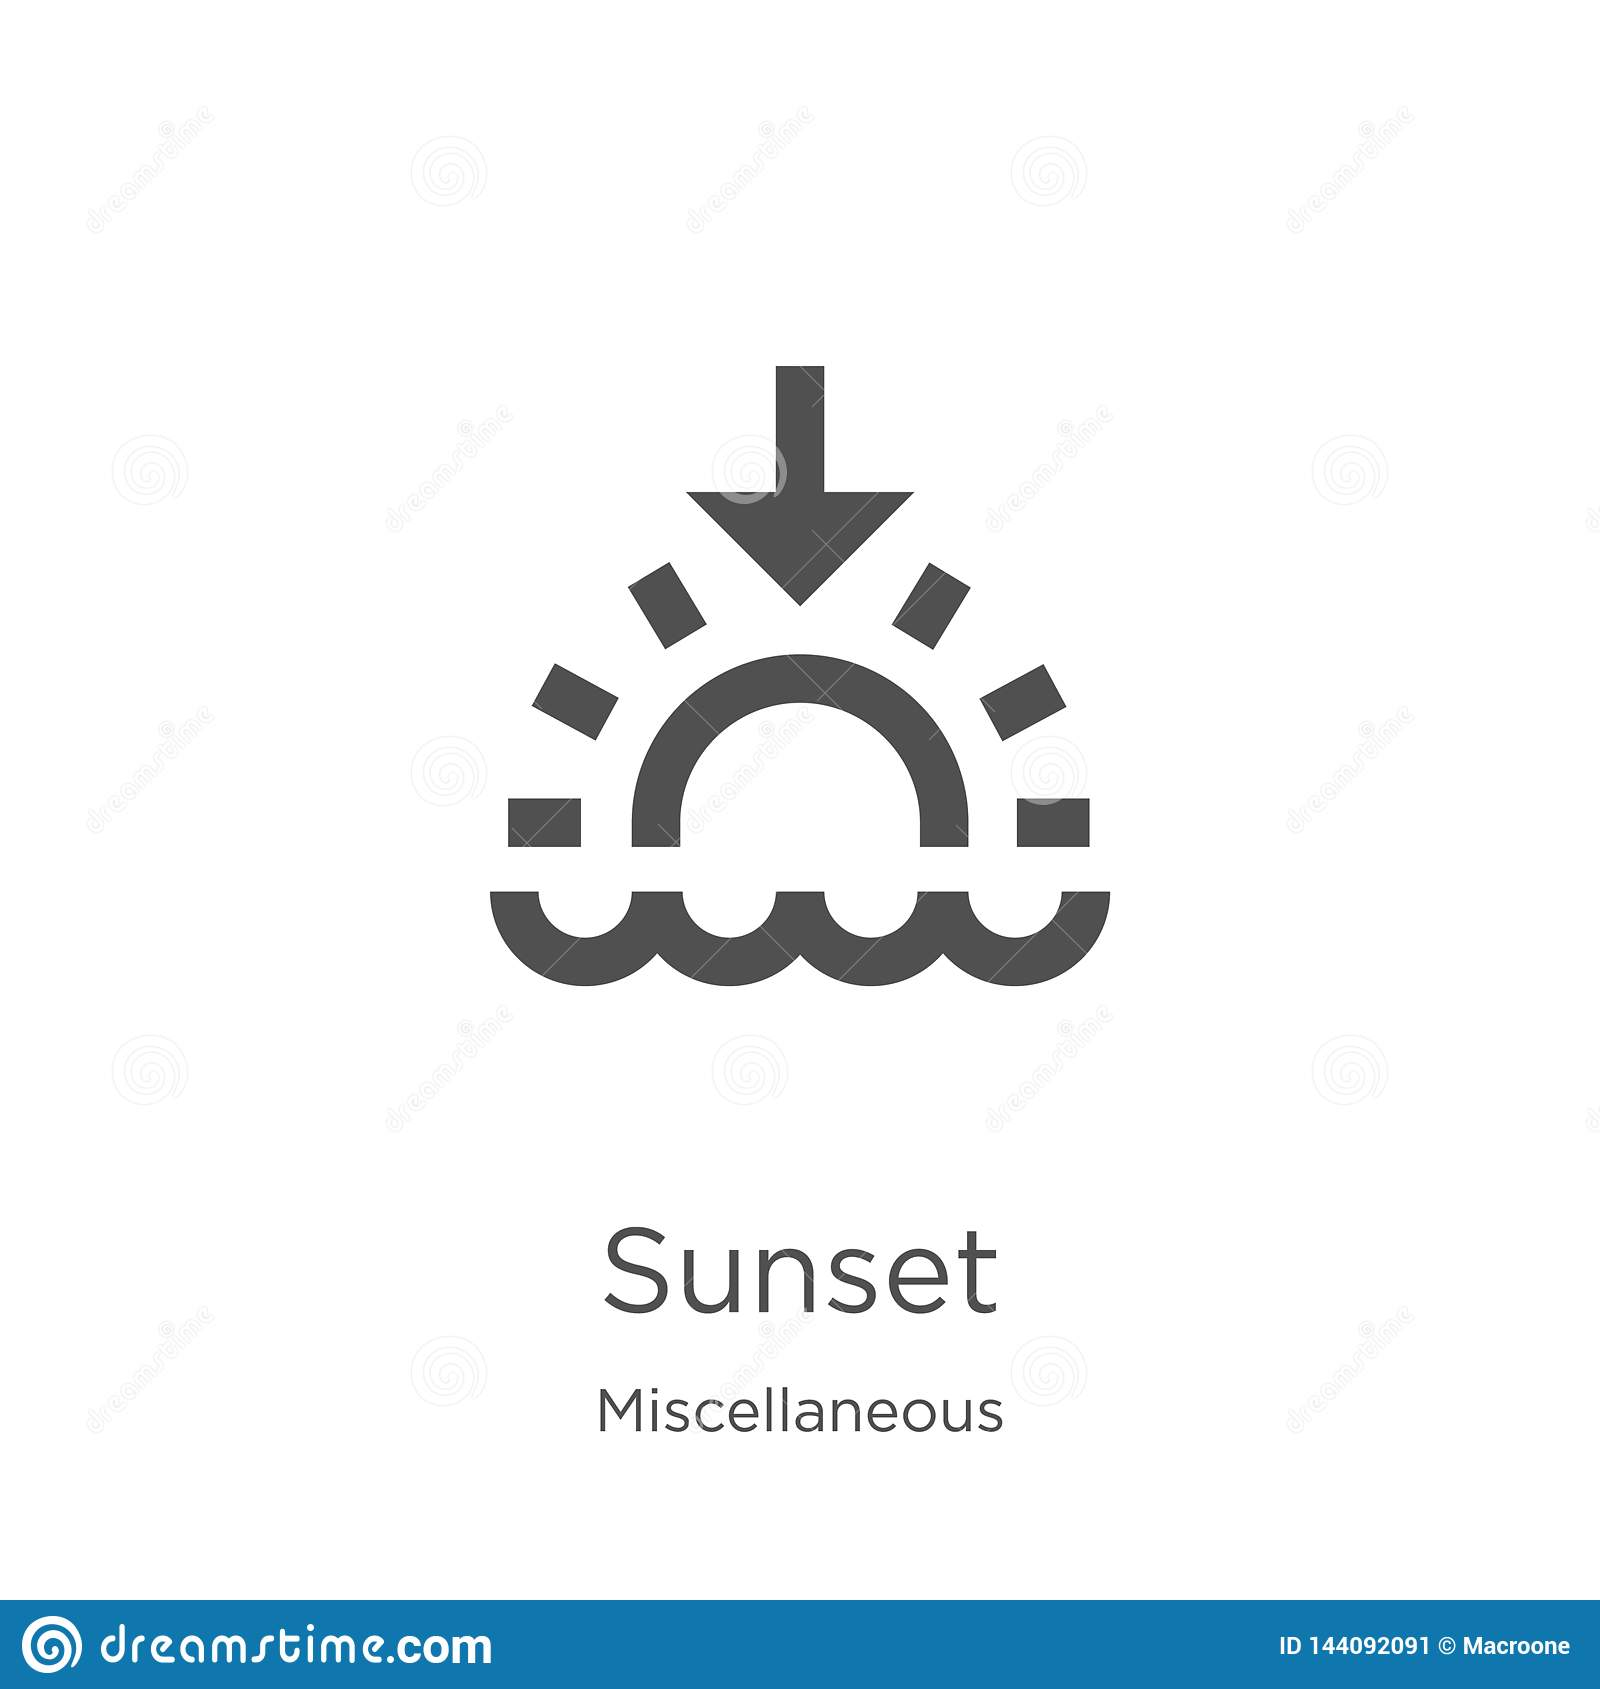 sunset icon vector from miscellaneous collection thin line sunset outline icon vector illustration outline thin line sunset stock vector illustration of abstract sign 144092091 dreamstime com